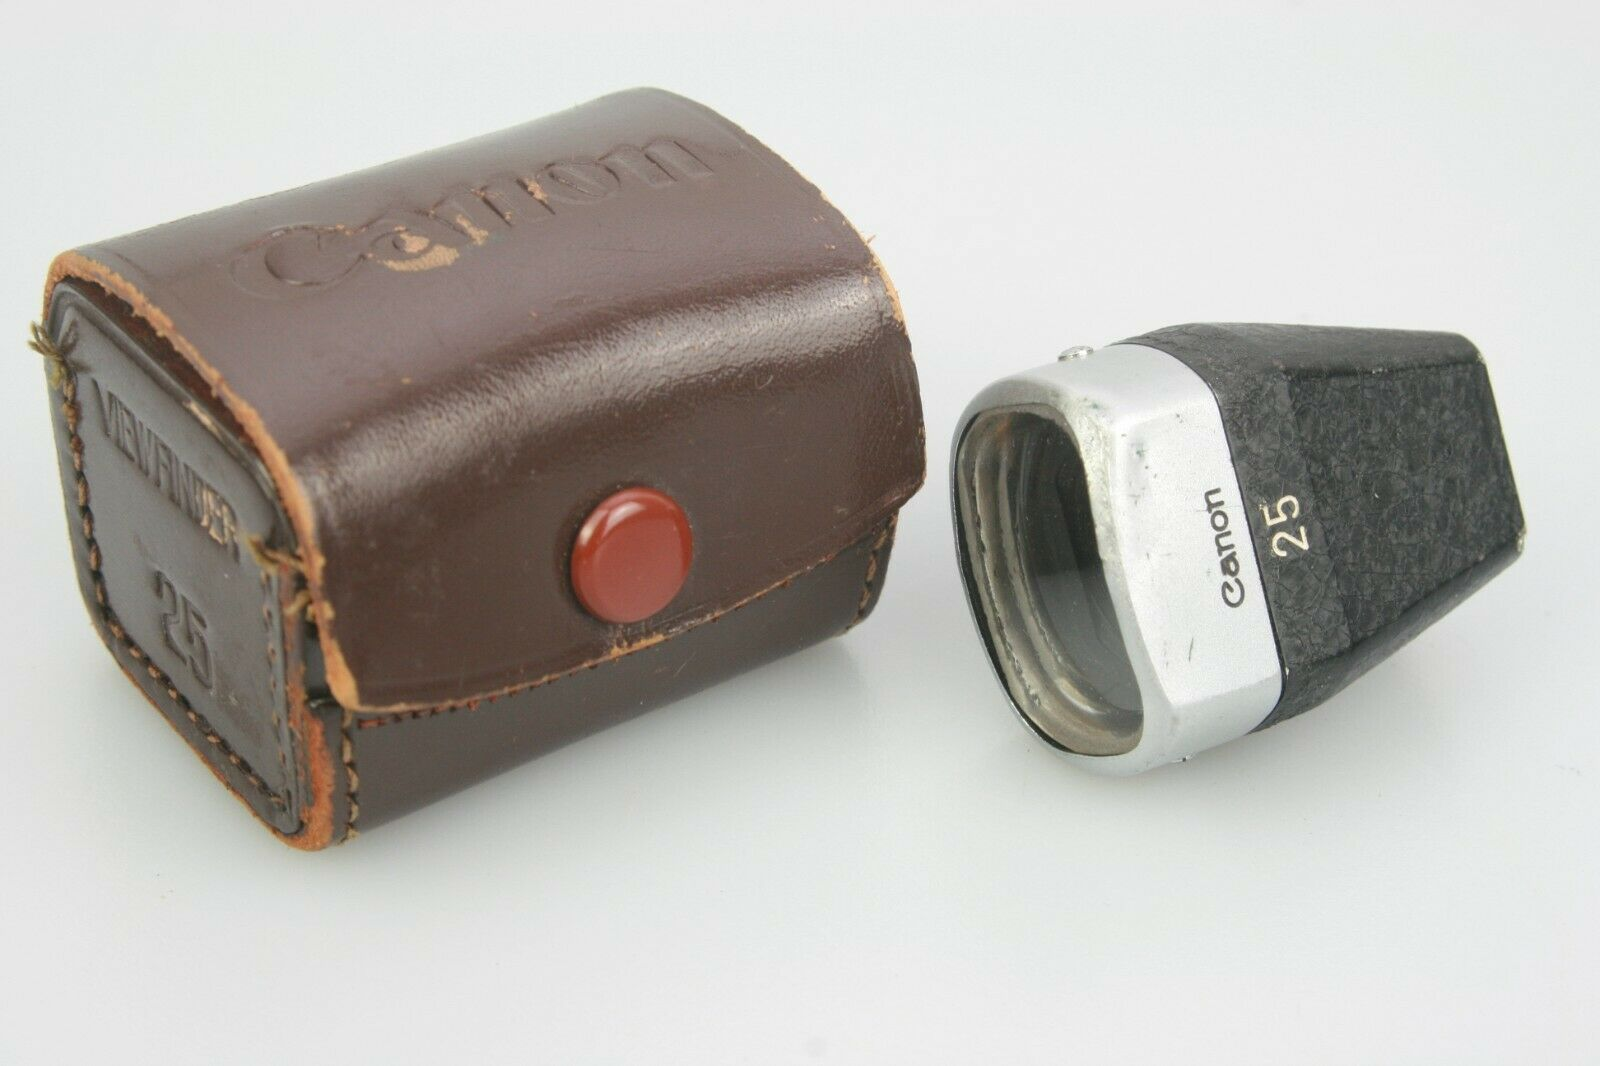 Vintage CANON 25mm VIEWFINDER & Leather Case